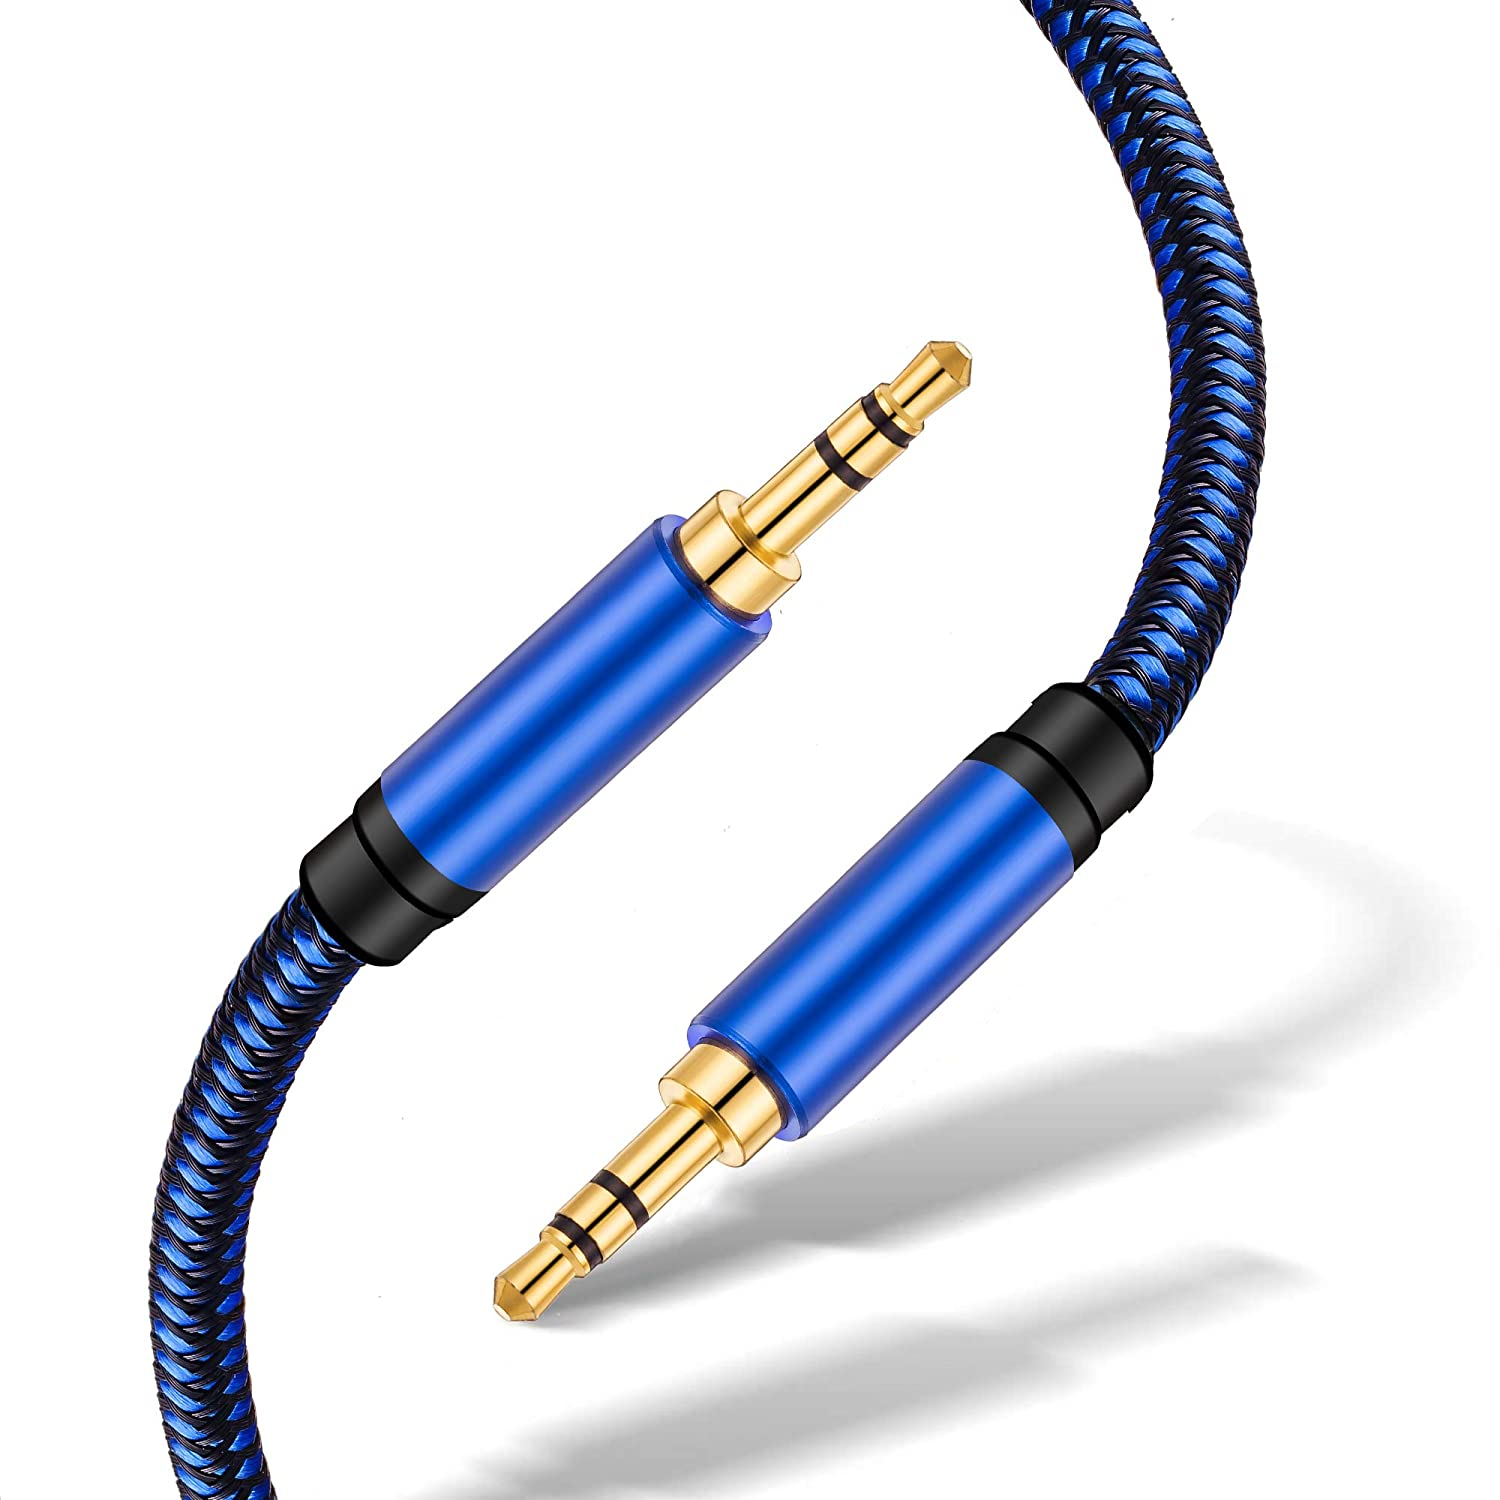 iPad Audio Cable 6ft iPhone Home Car Stereo System and More Smartphone iPod Uperatre 3.5mm Audio Cable Professional HiFi Male to Male Braided Stereo Aux Cord Wire for Headphones Speaker